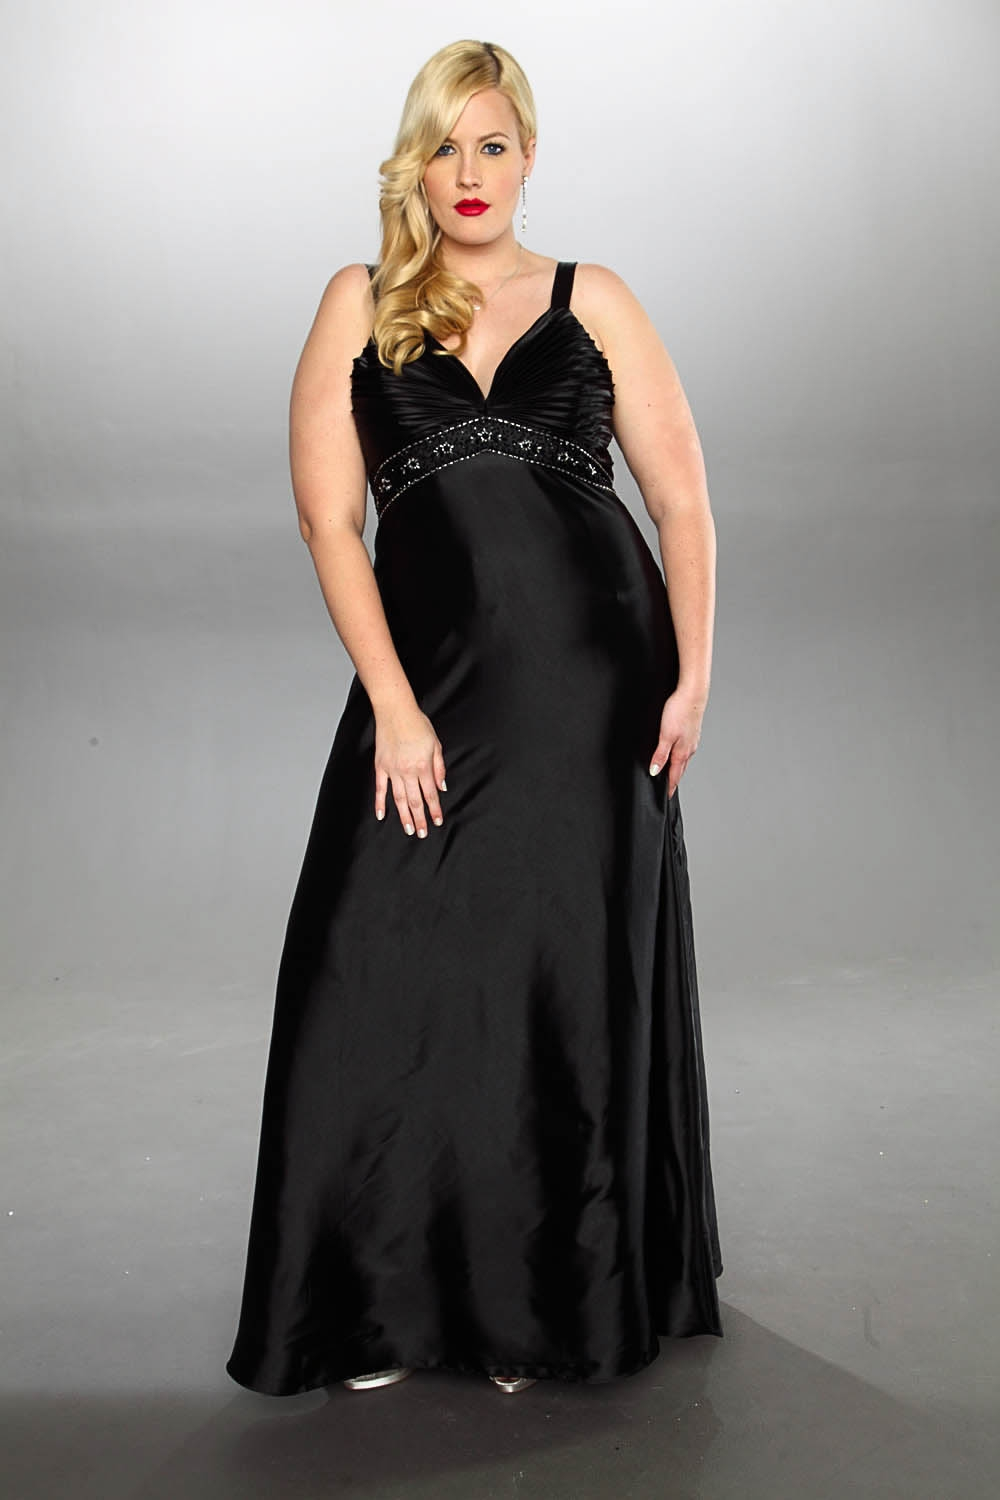 plus size black dresses for weddings 2014 2015 fashion